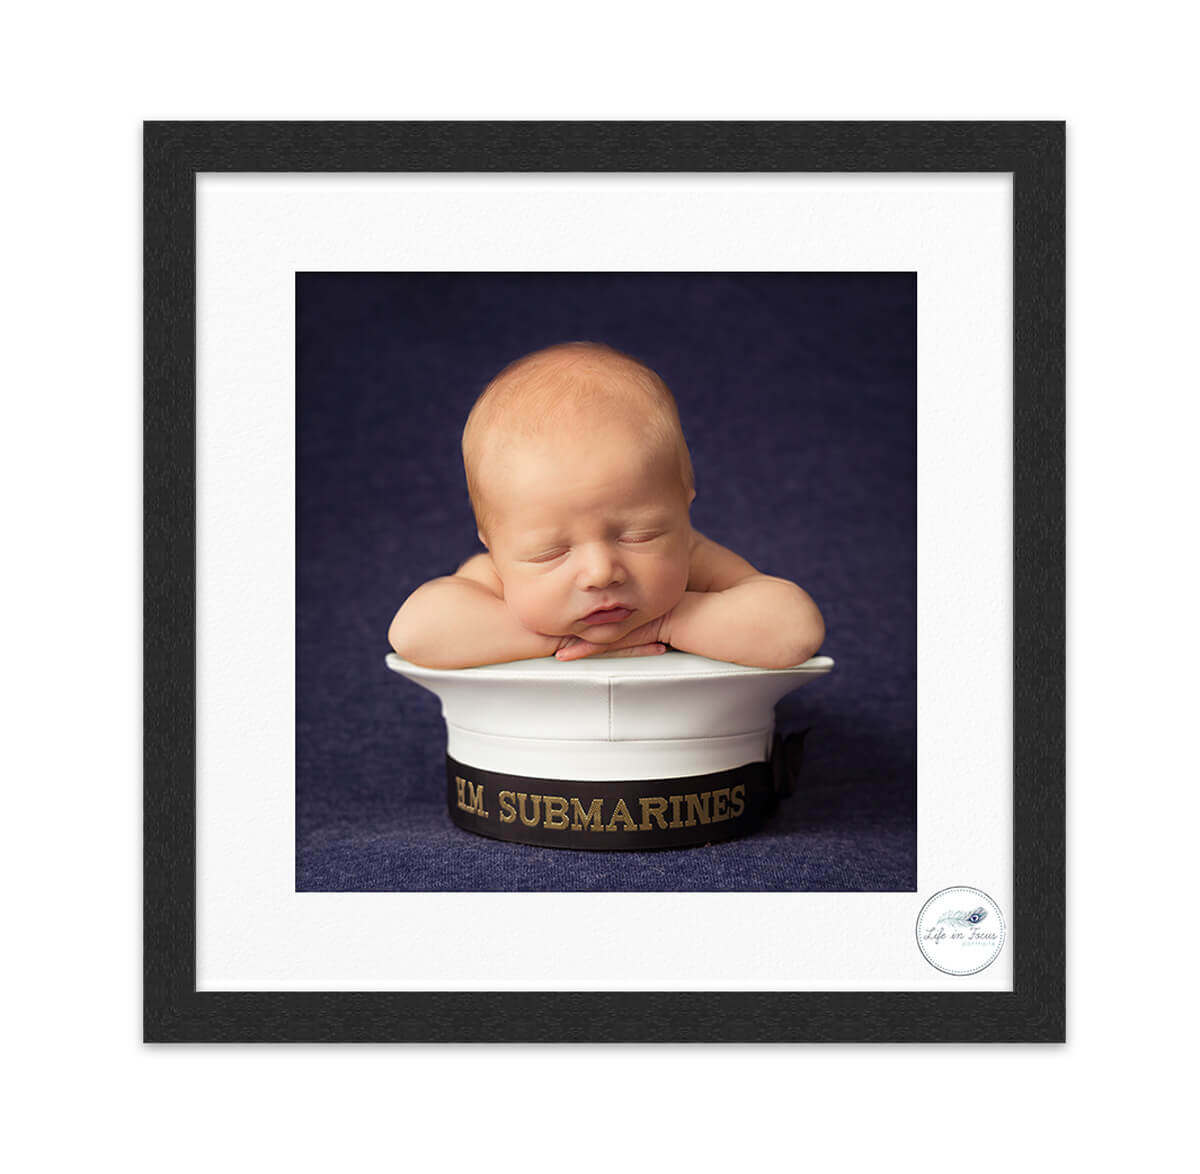 Newborn baby on Royal Navy Submariner cap Life in Focus Portraits baby photographer Faslane HMS Neptune Rhu Helensburgh